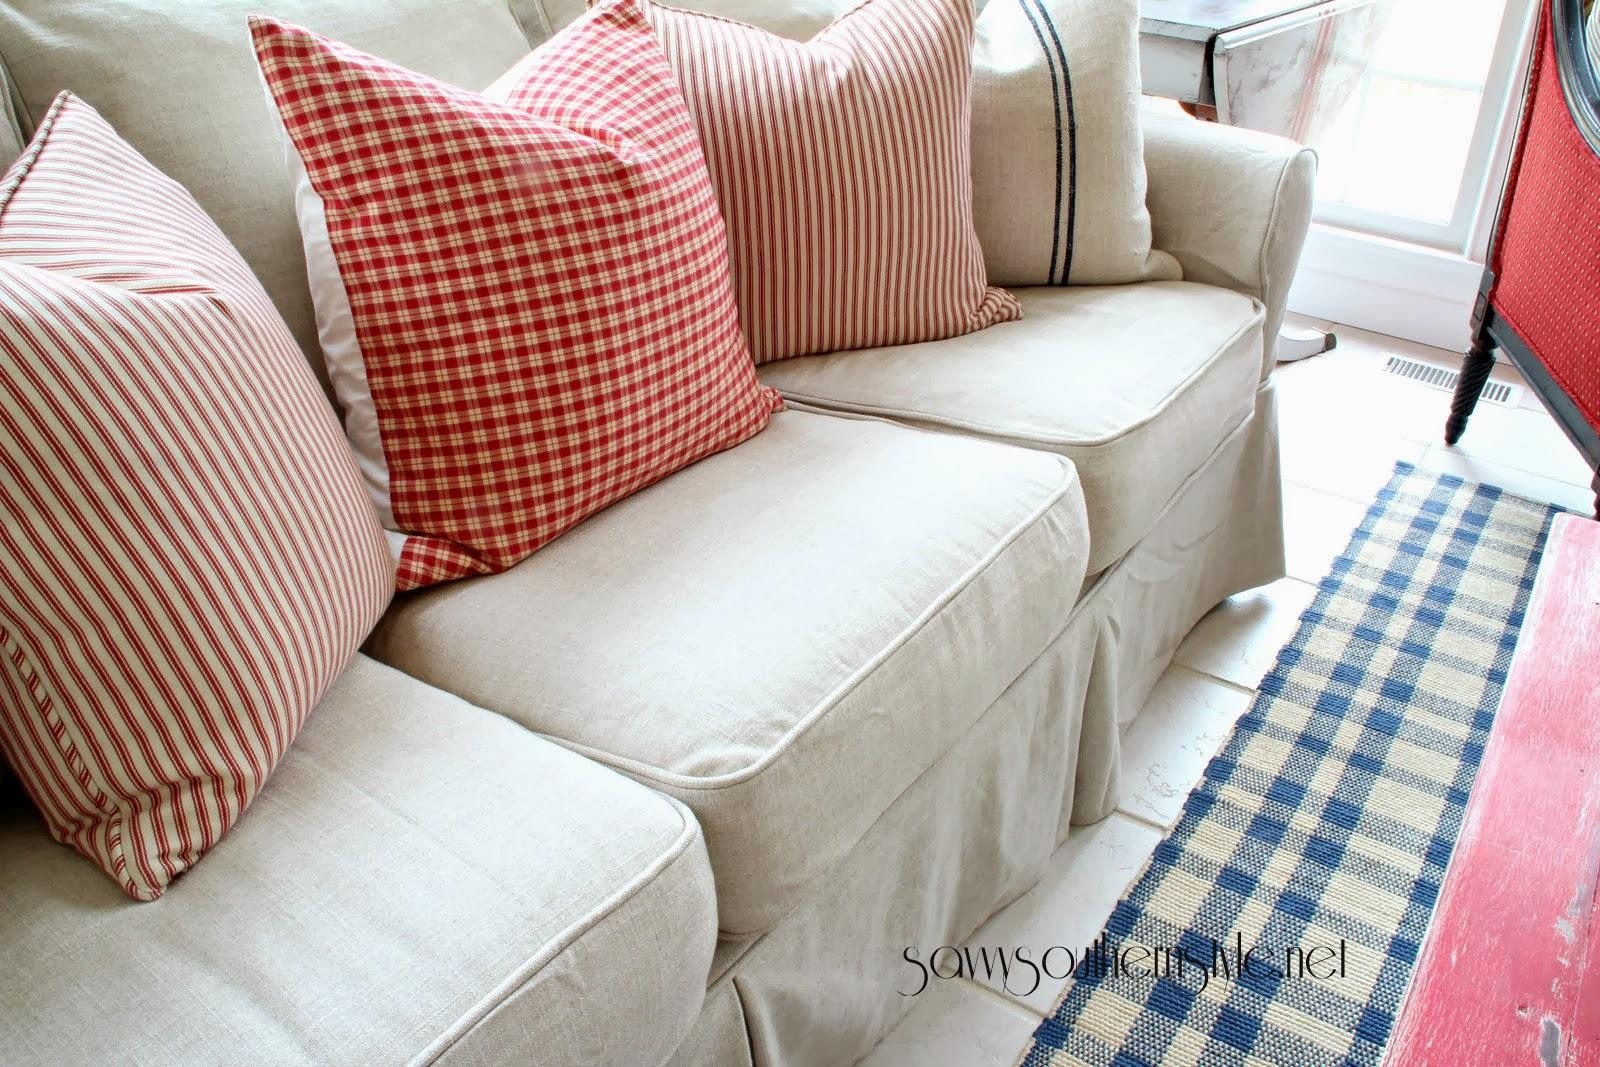 Custom Slipcovers And Couch Cover For Any Sofa Online Within Sleeper Sofa Slipcovers (Image 4 of 20)